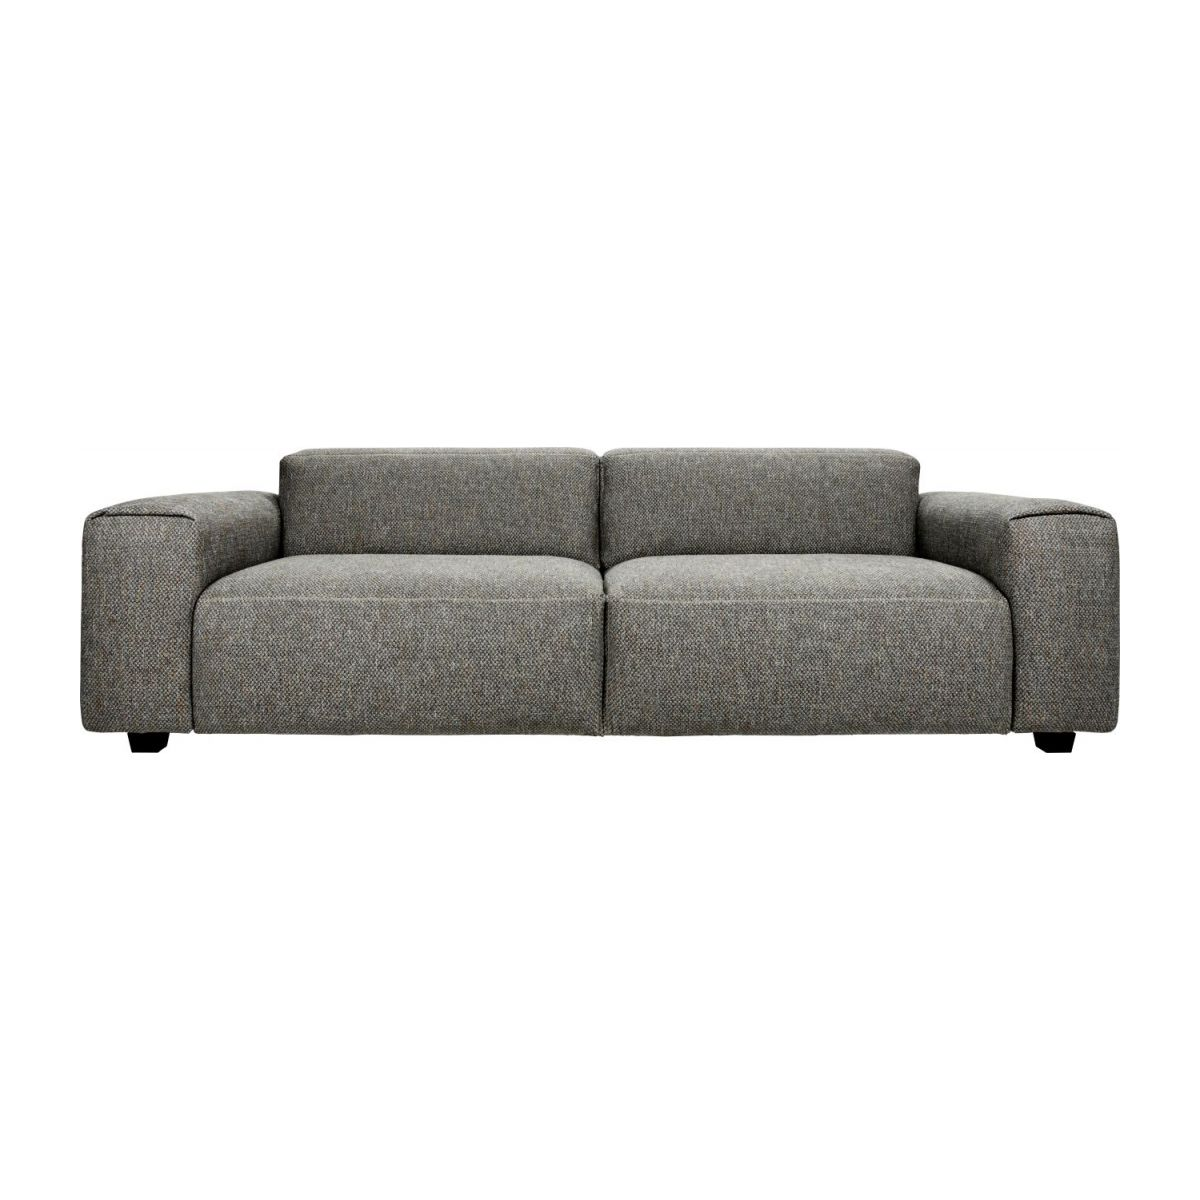 4-seter sofa, sort n°4